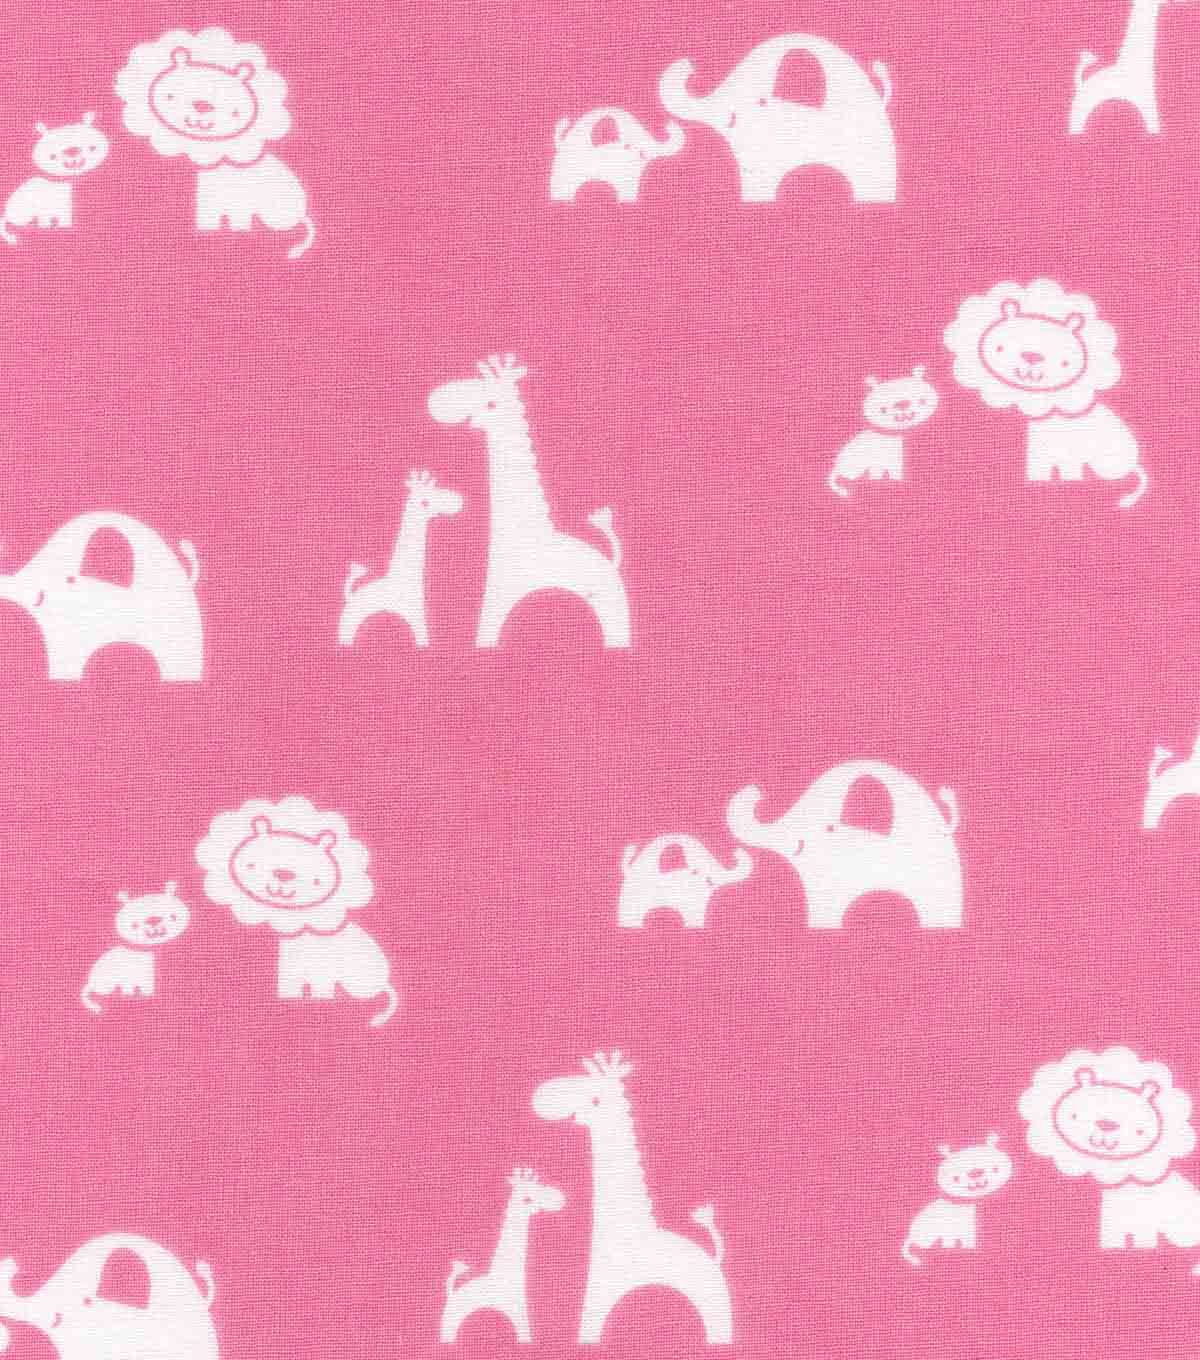 Nursery Cotton Fabric 43\u0027\u0027-2 By 2 Sweet Animals on Pink